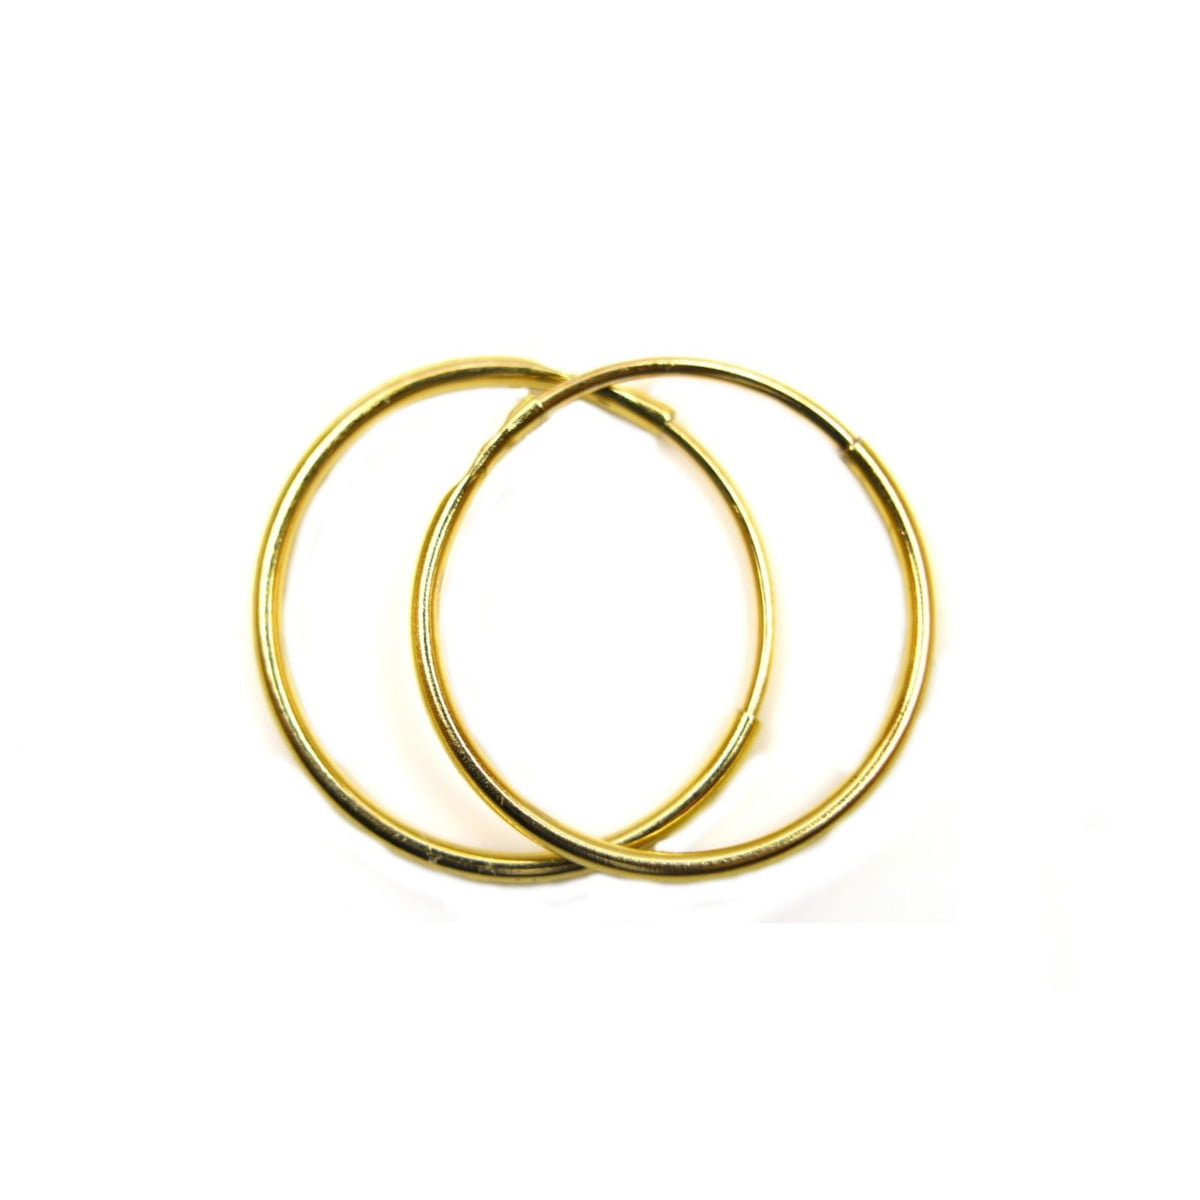 10 mm plain sleeper hoops (1 pair) in 9ct yellow gold